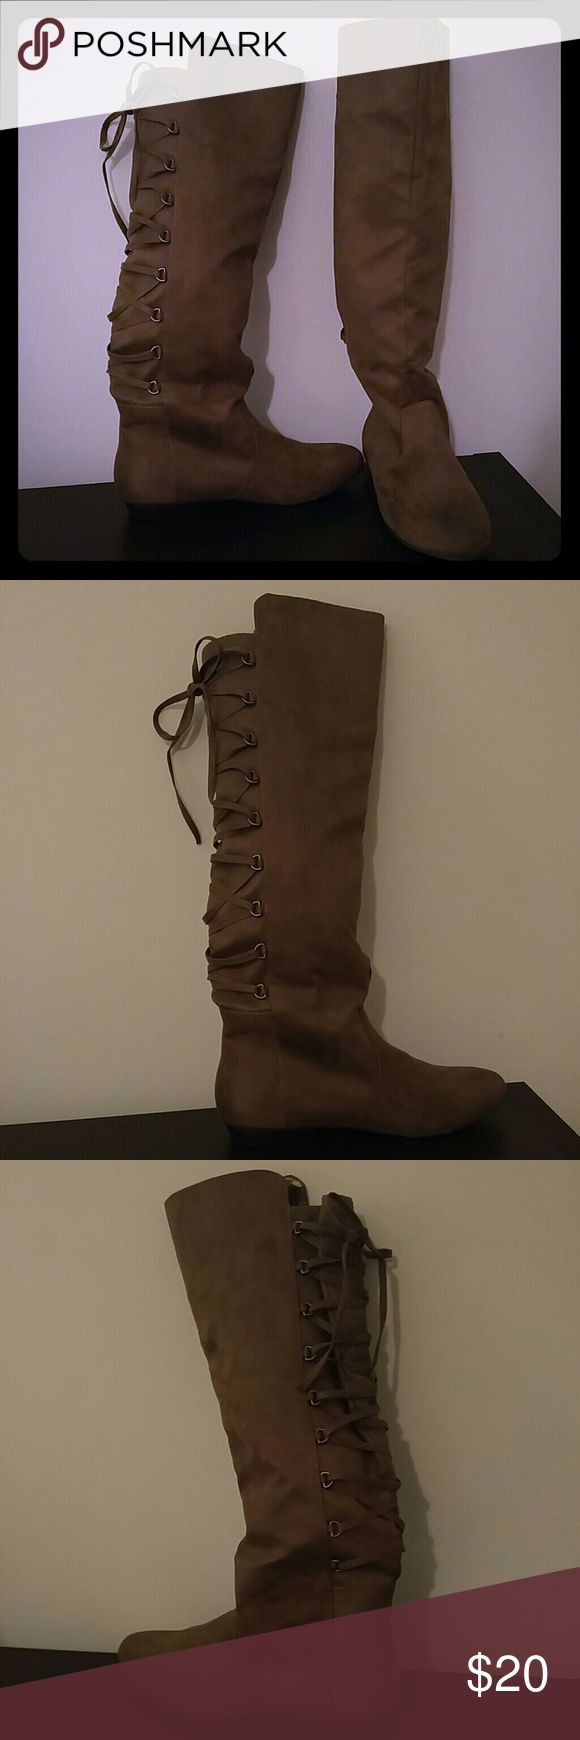 Brown Suede Laced Up Boots, Size 8 Brown Suede Lace Up Flat Boots, Size 8 Shoes Lace Up Boots